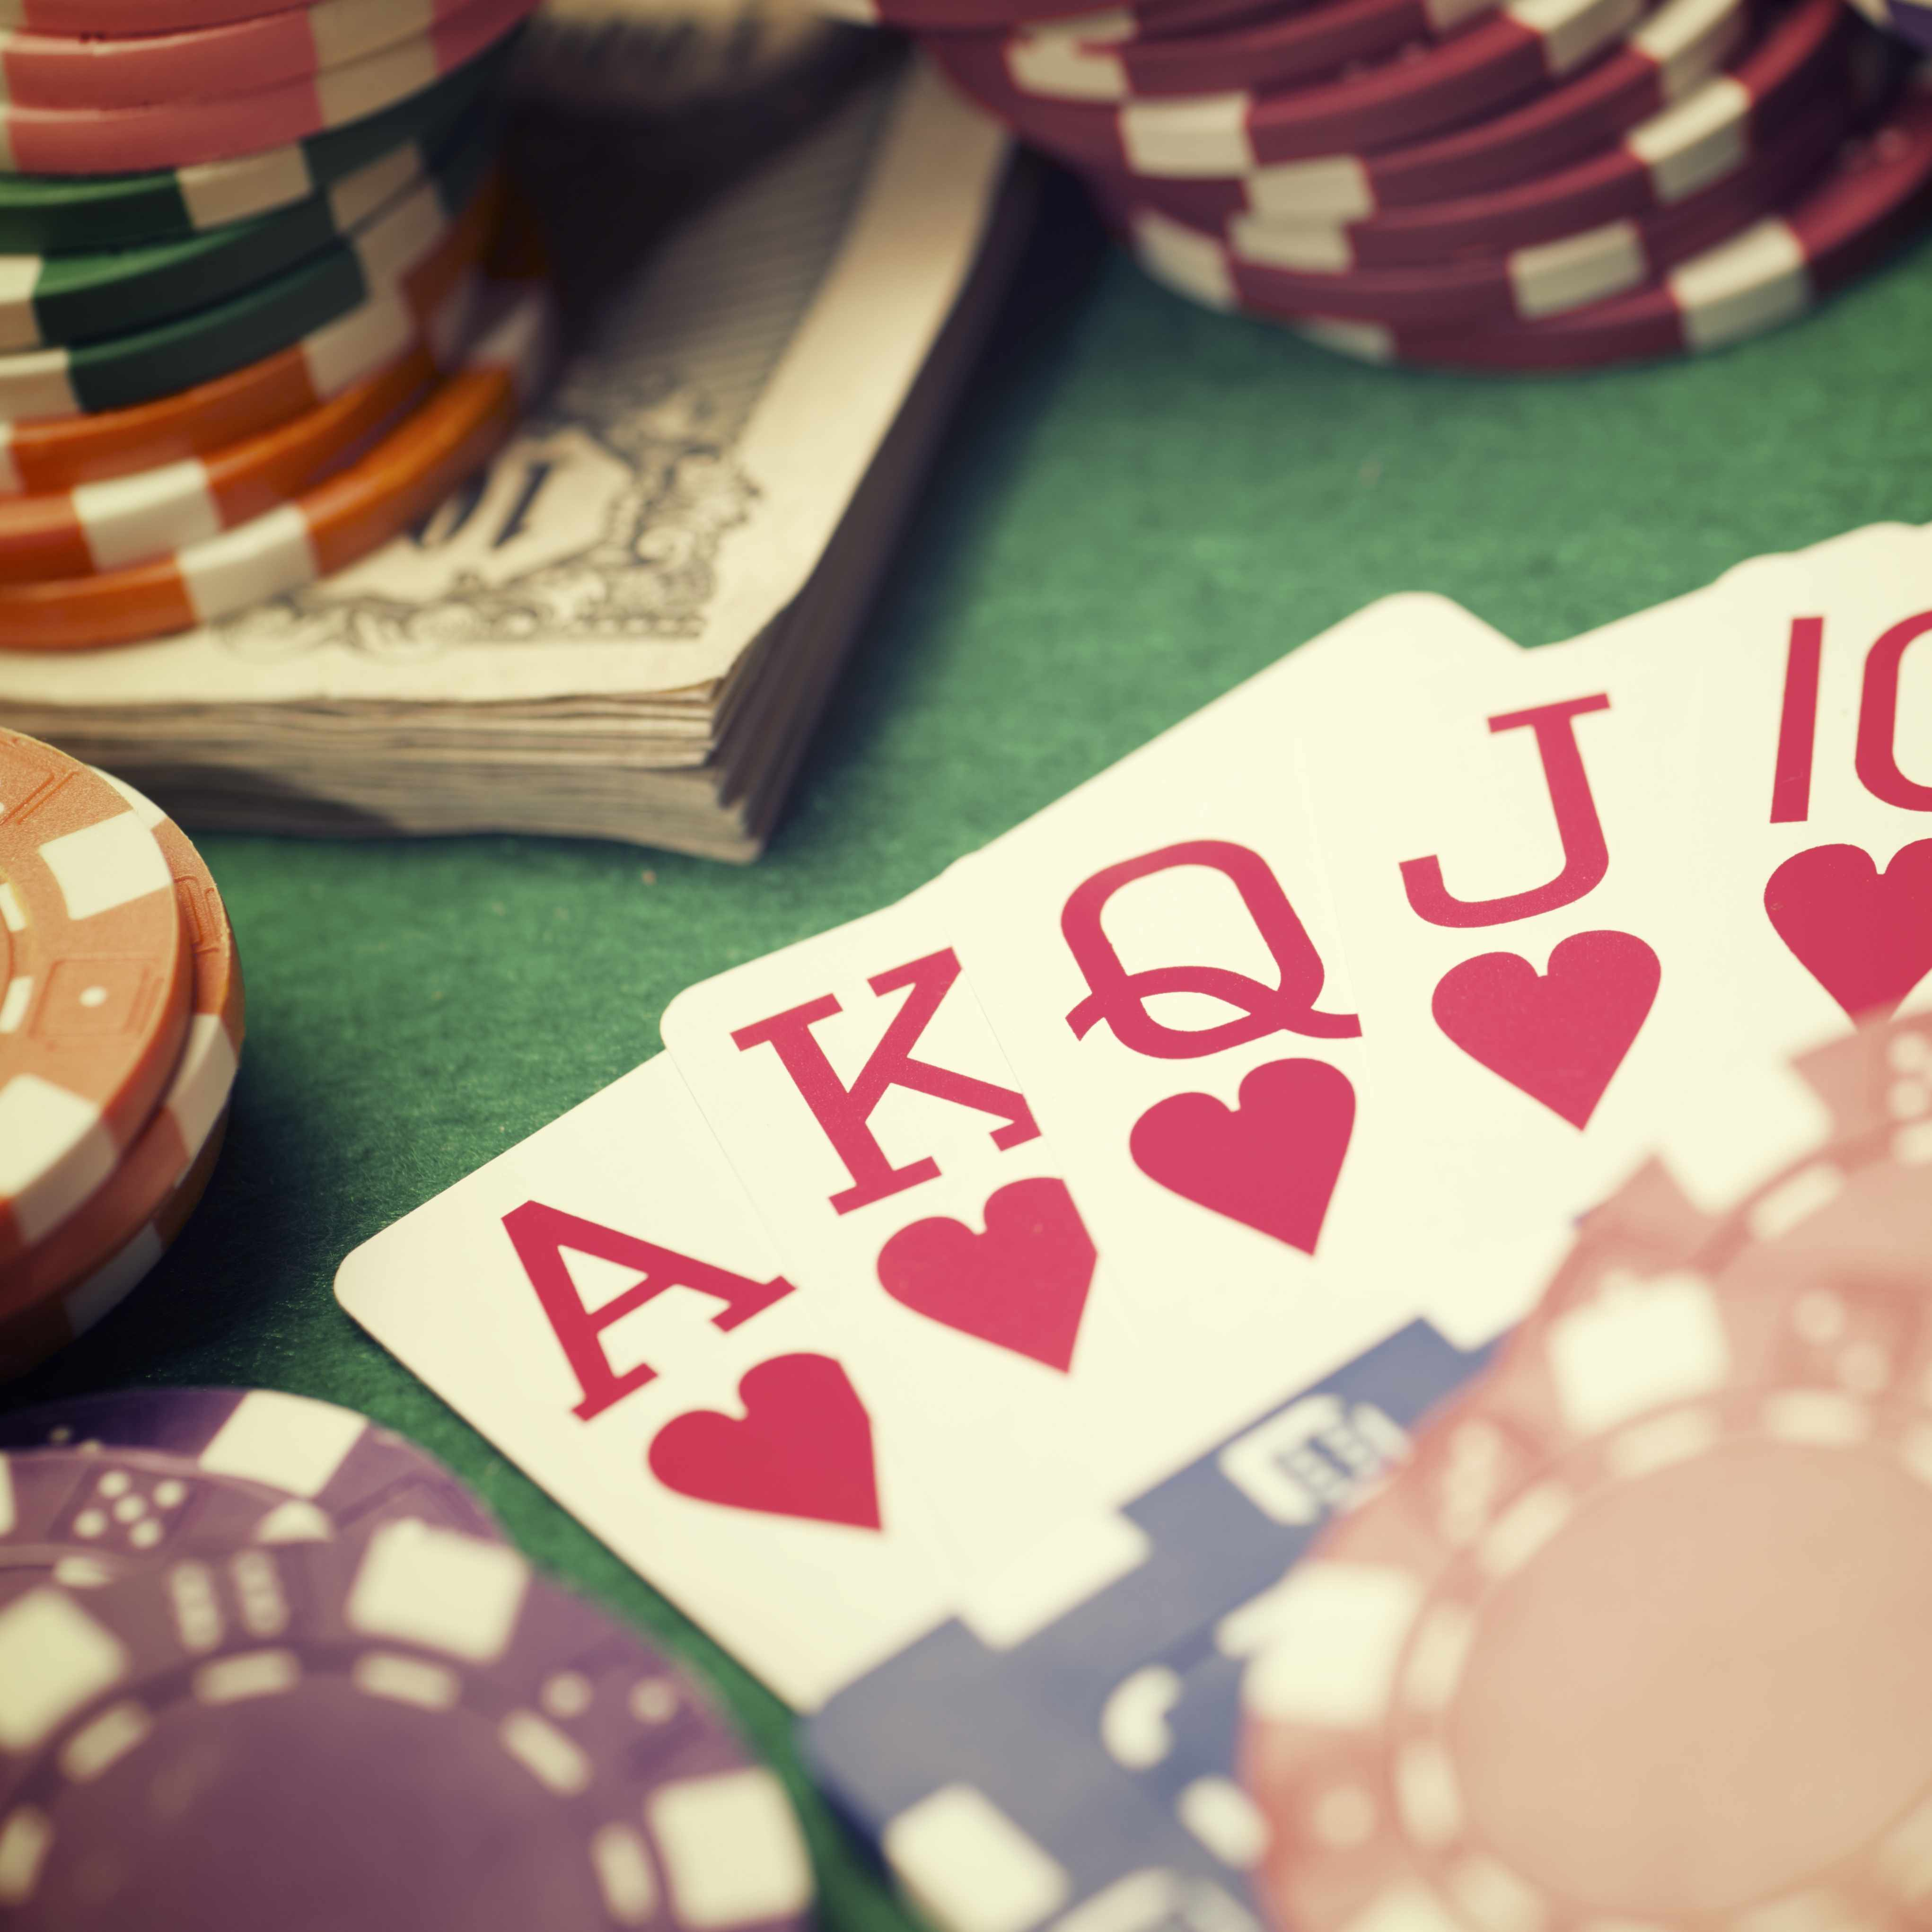 a close-up of playing cards, money and poker chips on a gaming table